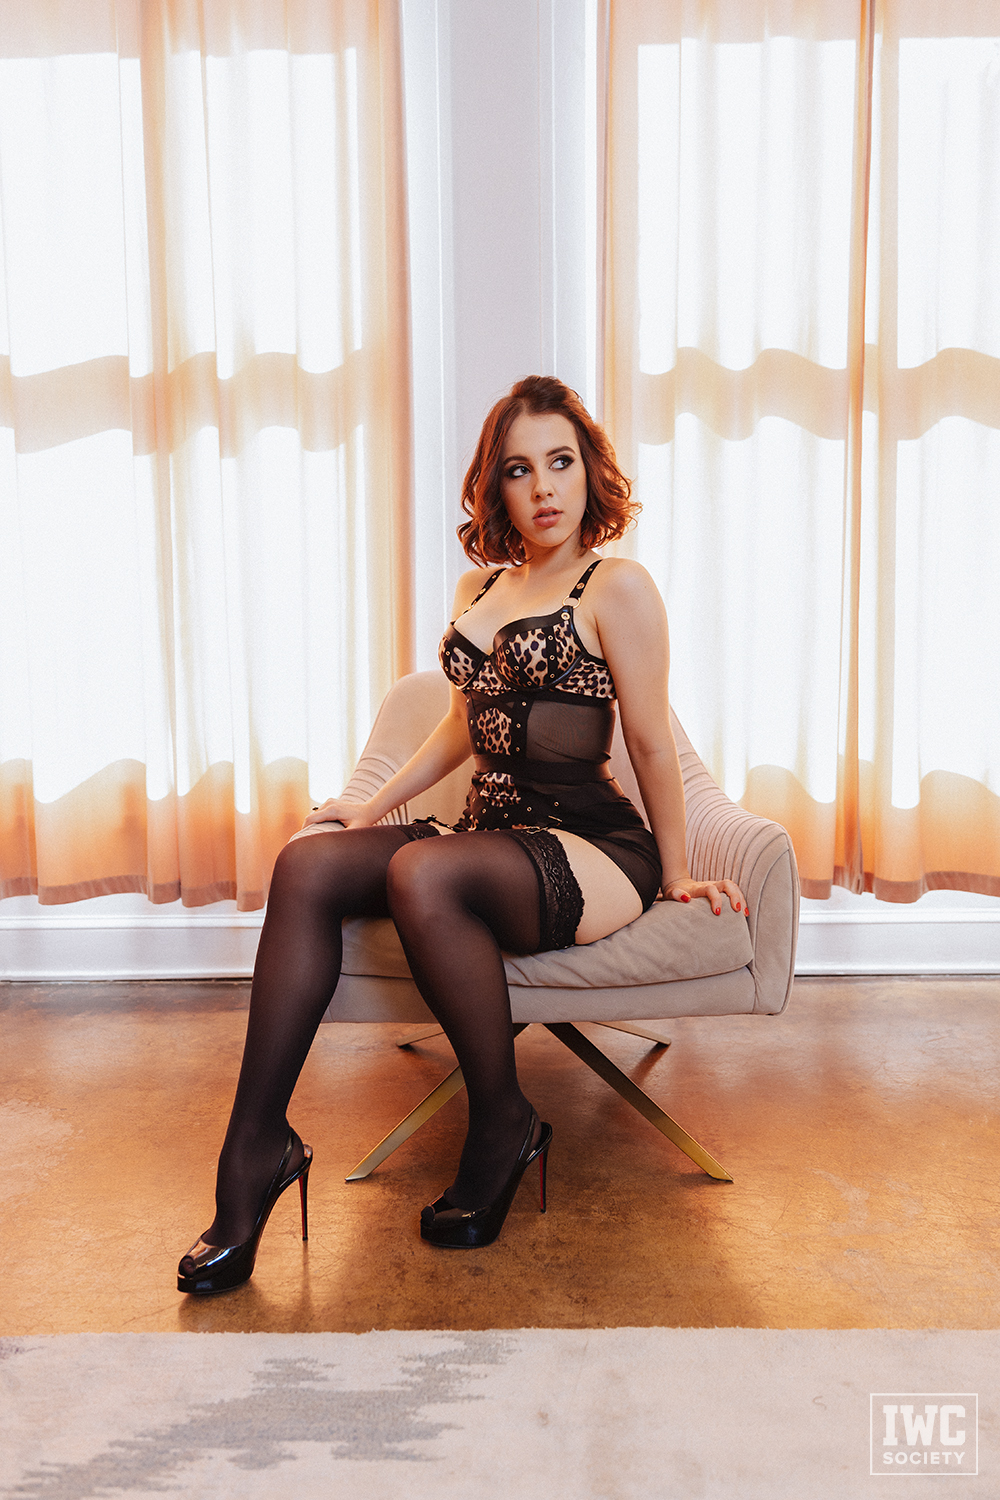 Financial Domme Princess Violette sitting on chair in front of windows in lingerie